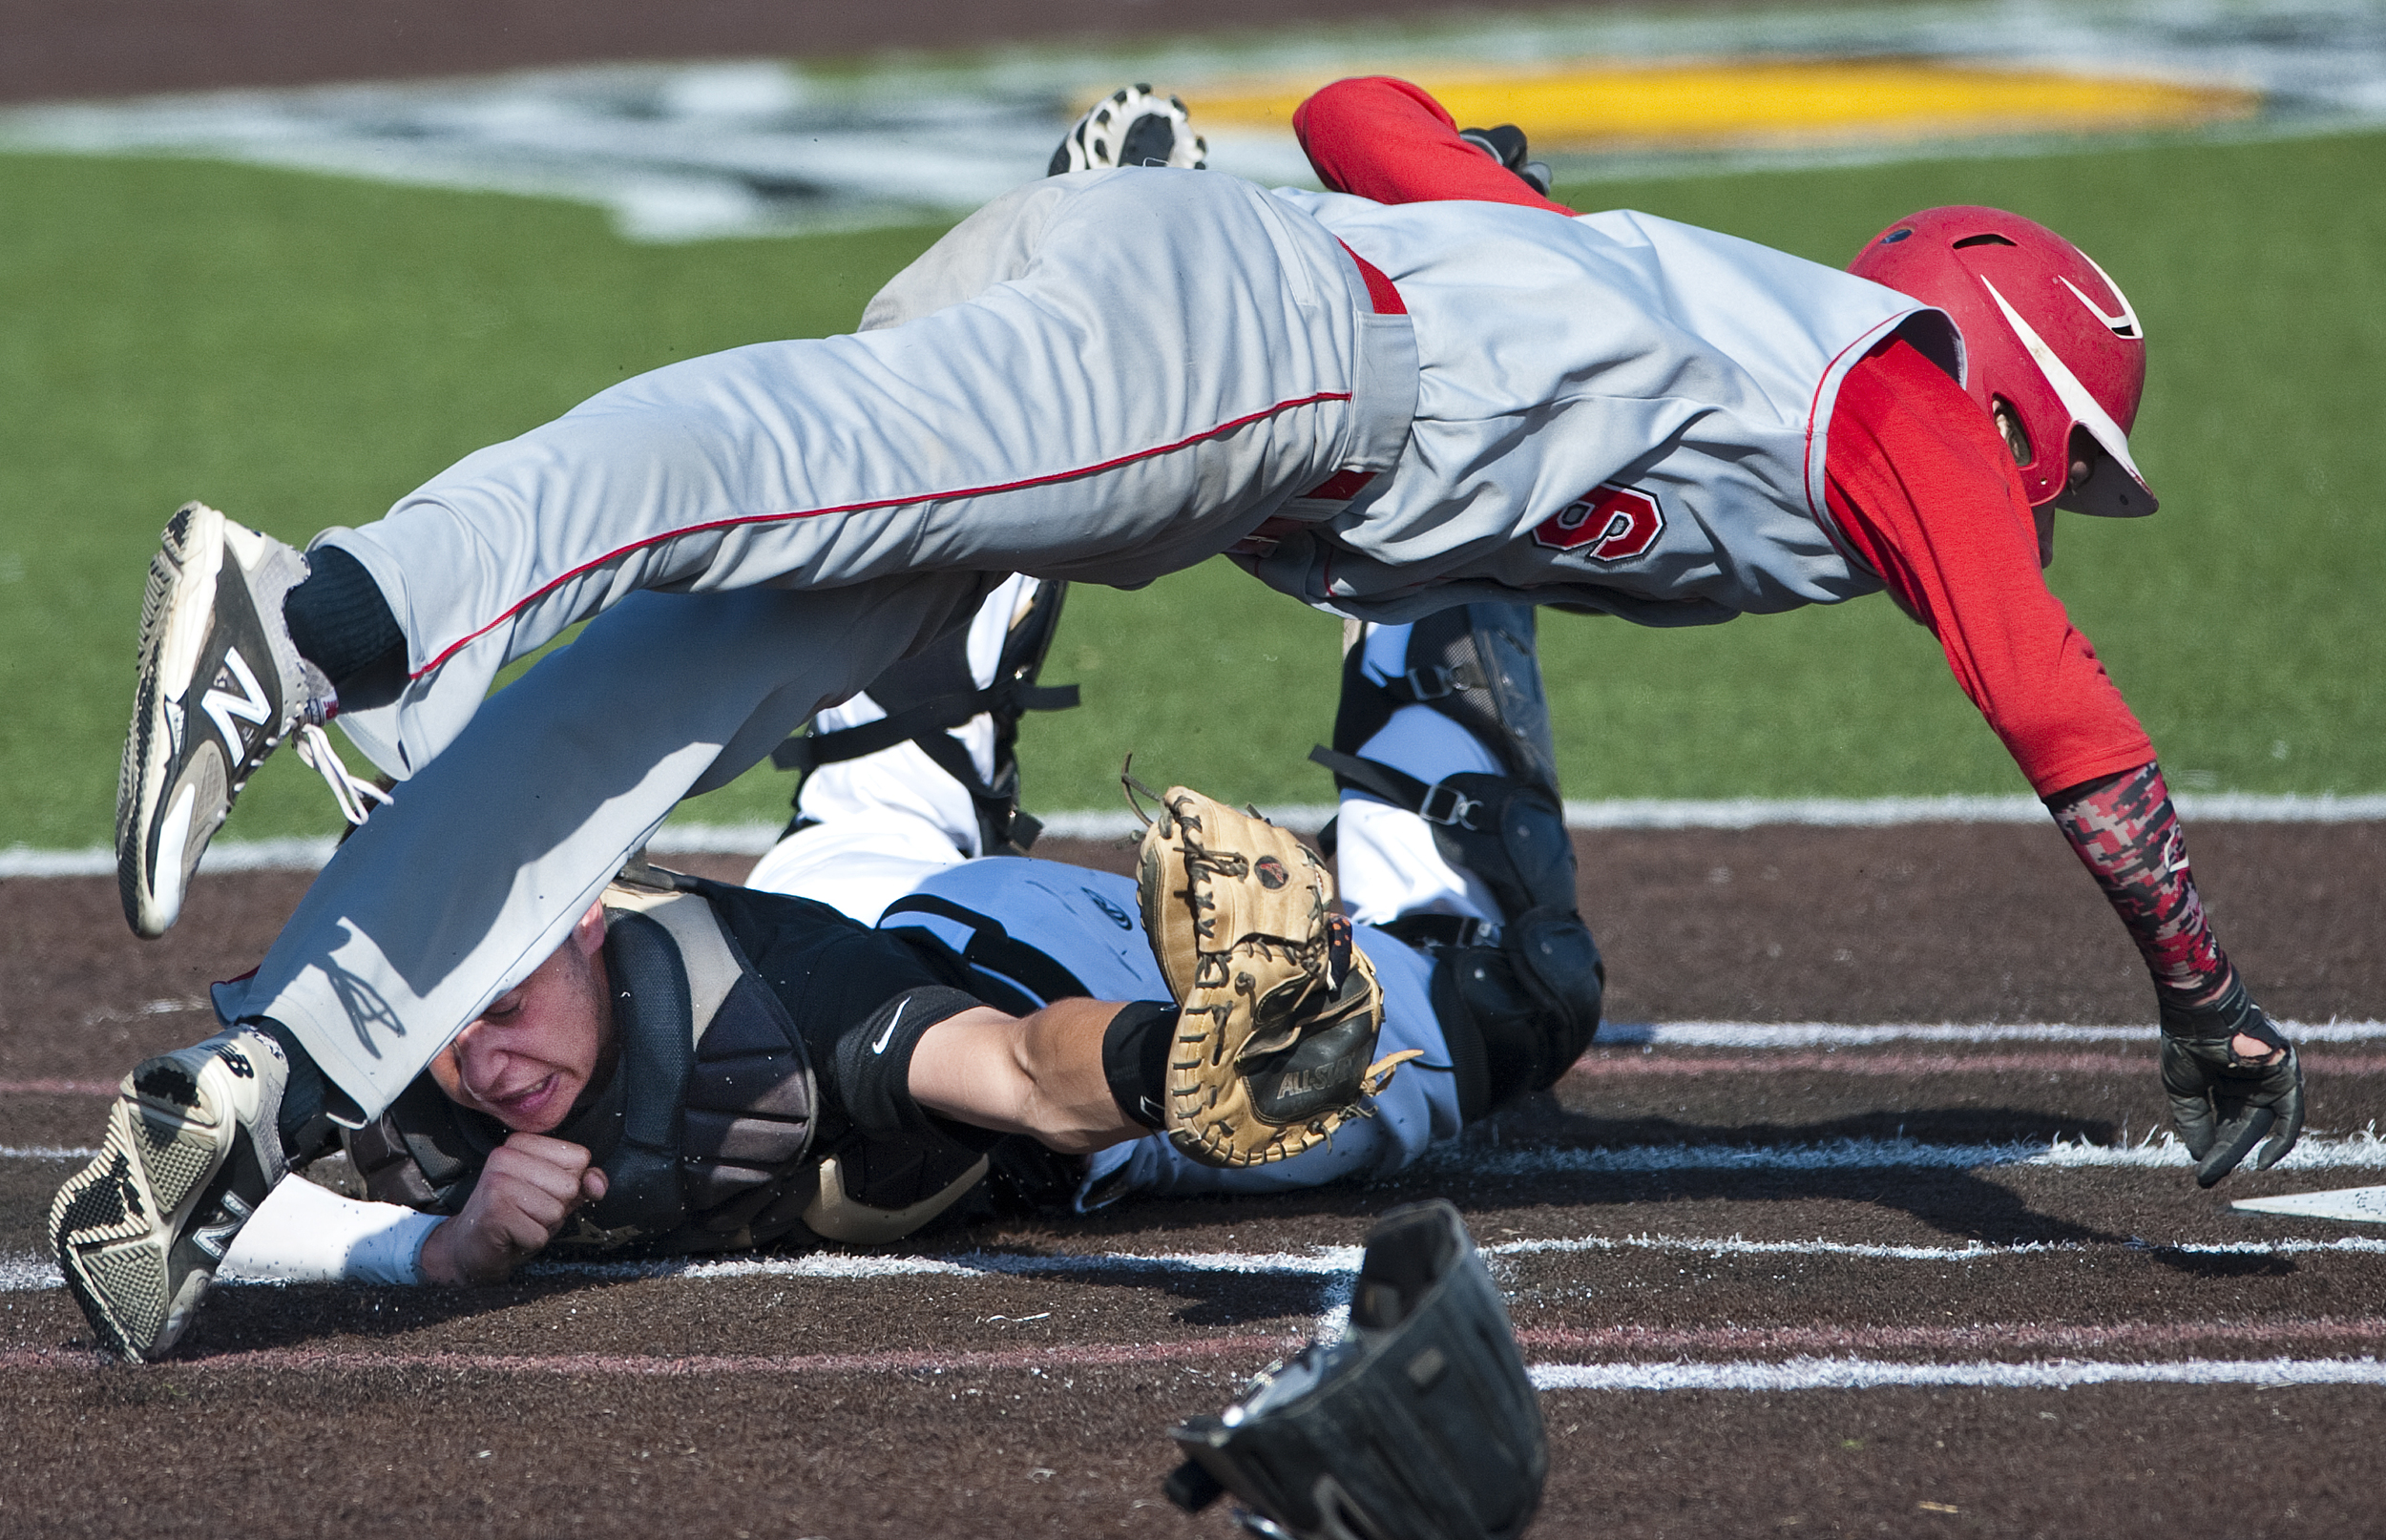 Quaker Valley's John Medich tags out Neshannock's Jason Swope at home plate during the WPIAL Class AA Championship on Tuesday, May 26, 2015 at Consol Energy Park in Washington. Neshannock won 4-0.